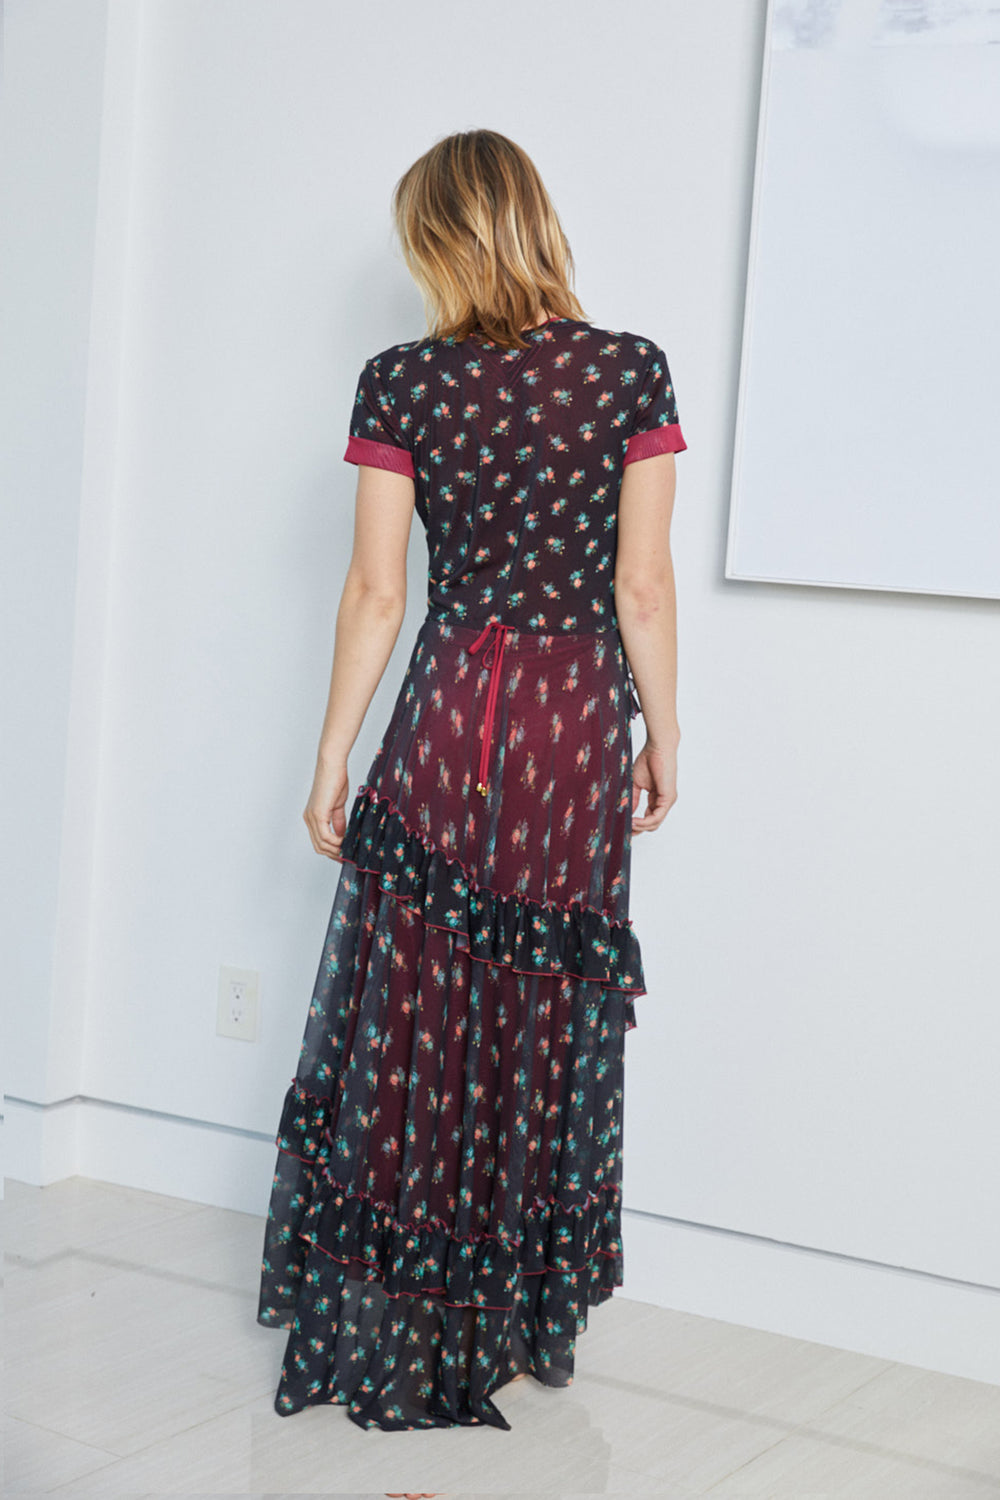 black and red floral mesh vintage inspired ruffled maxi dress with adjustable tie at the waist